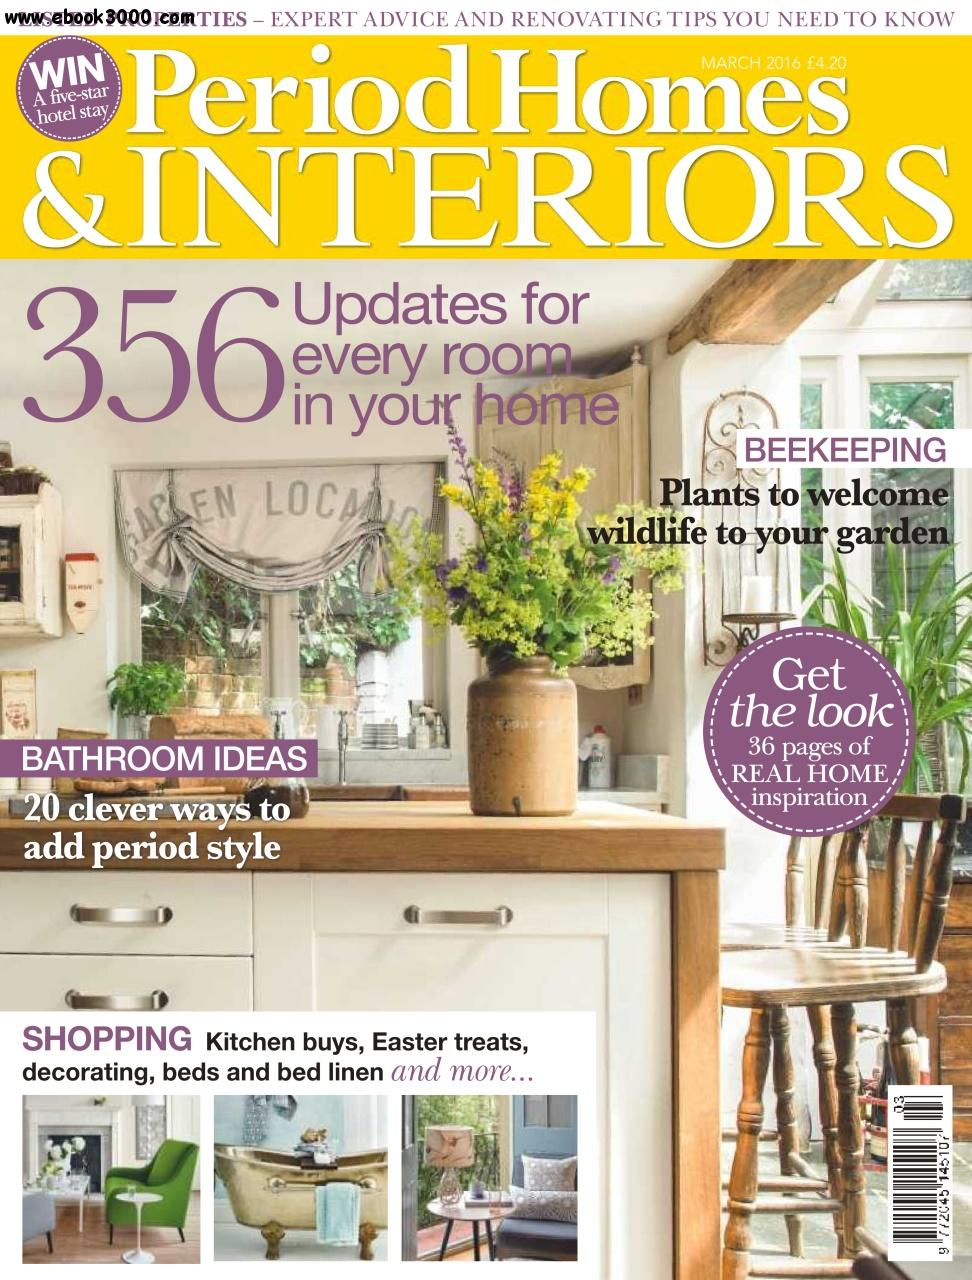 Period Homes & Interiors - March 2016 download dree